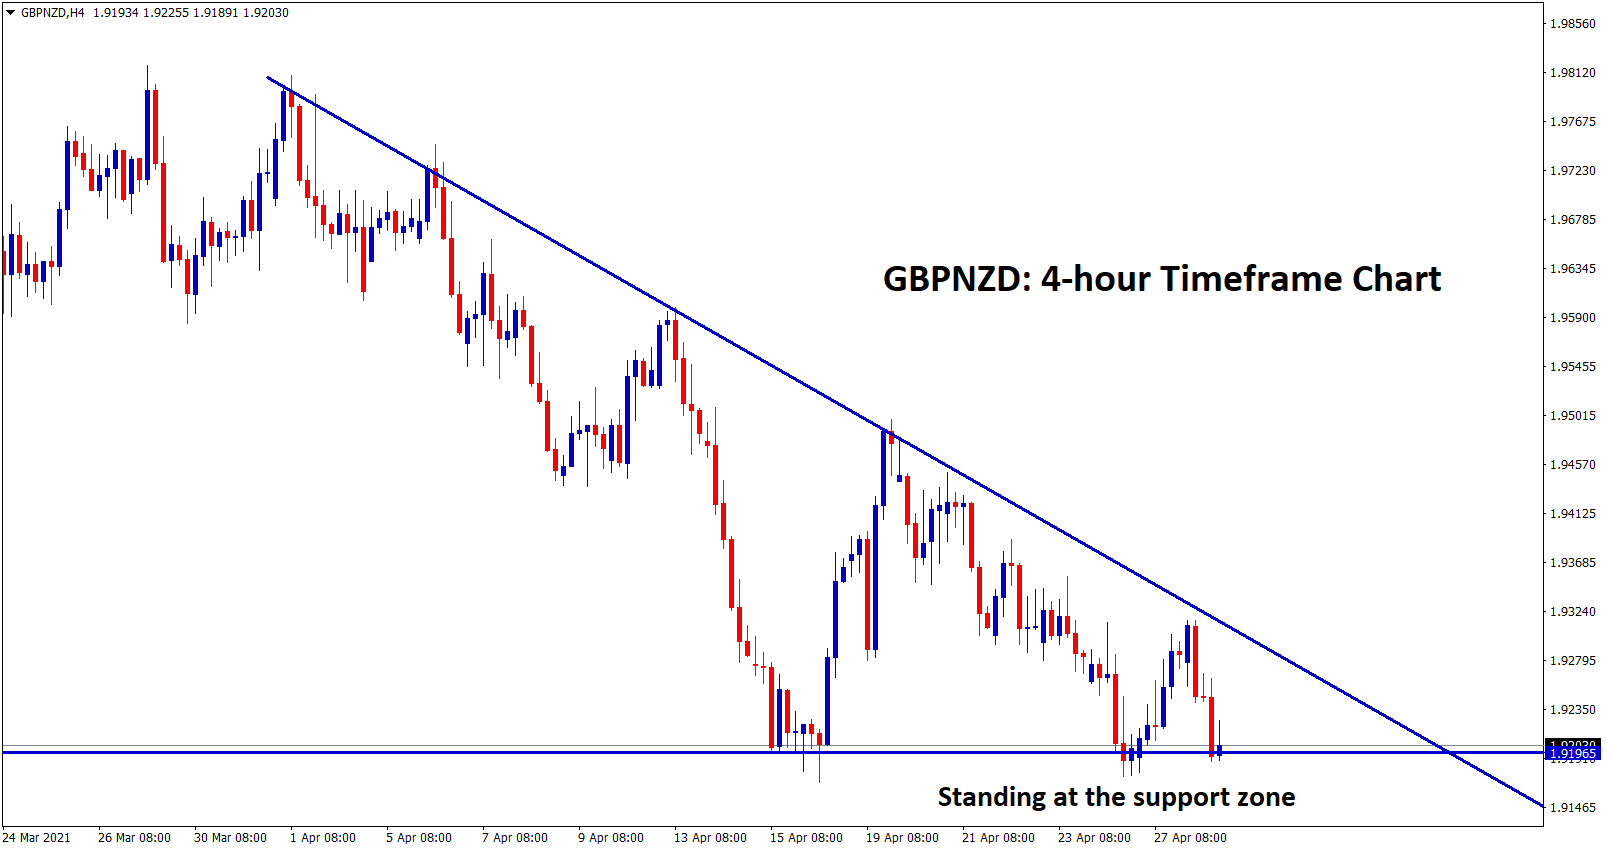 GBPNZD standing at the support zone of the descending Triangle